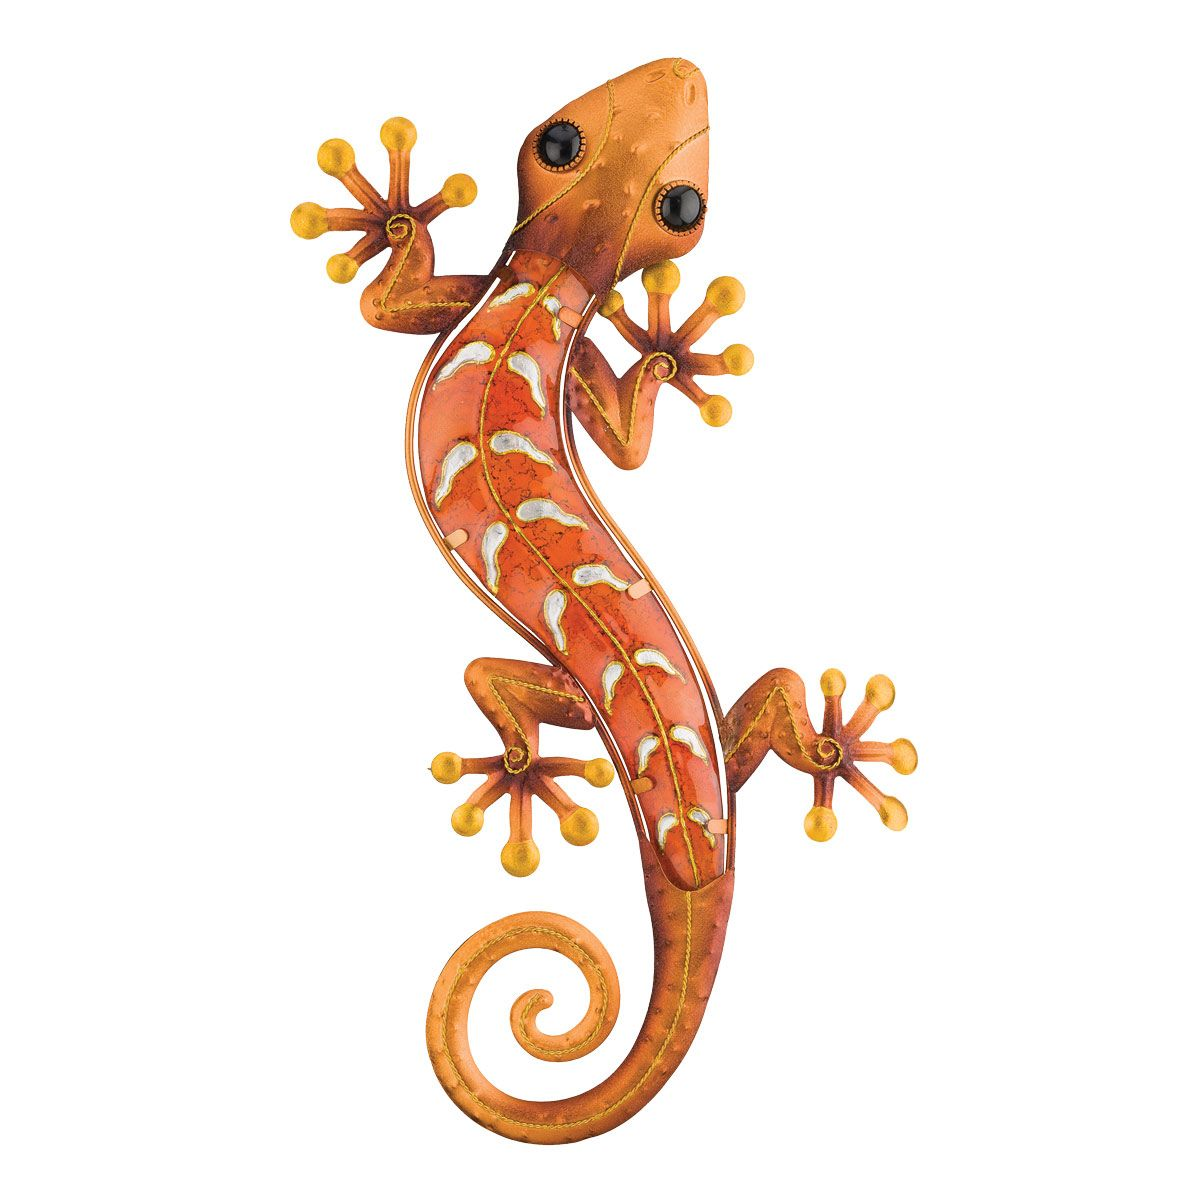 Metal Gecko Wall Art - Copper - OUT OF STOCK UNTIL 6/25/2021